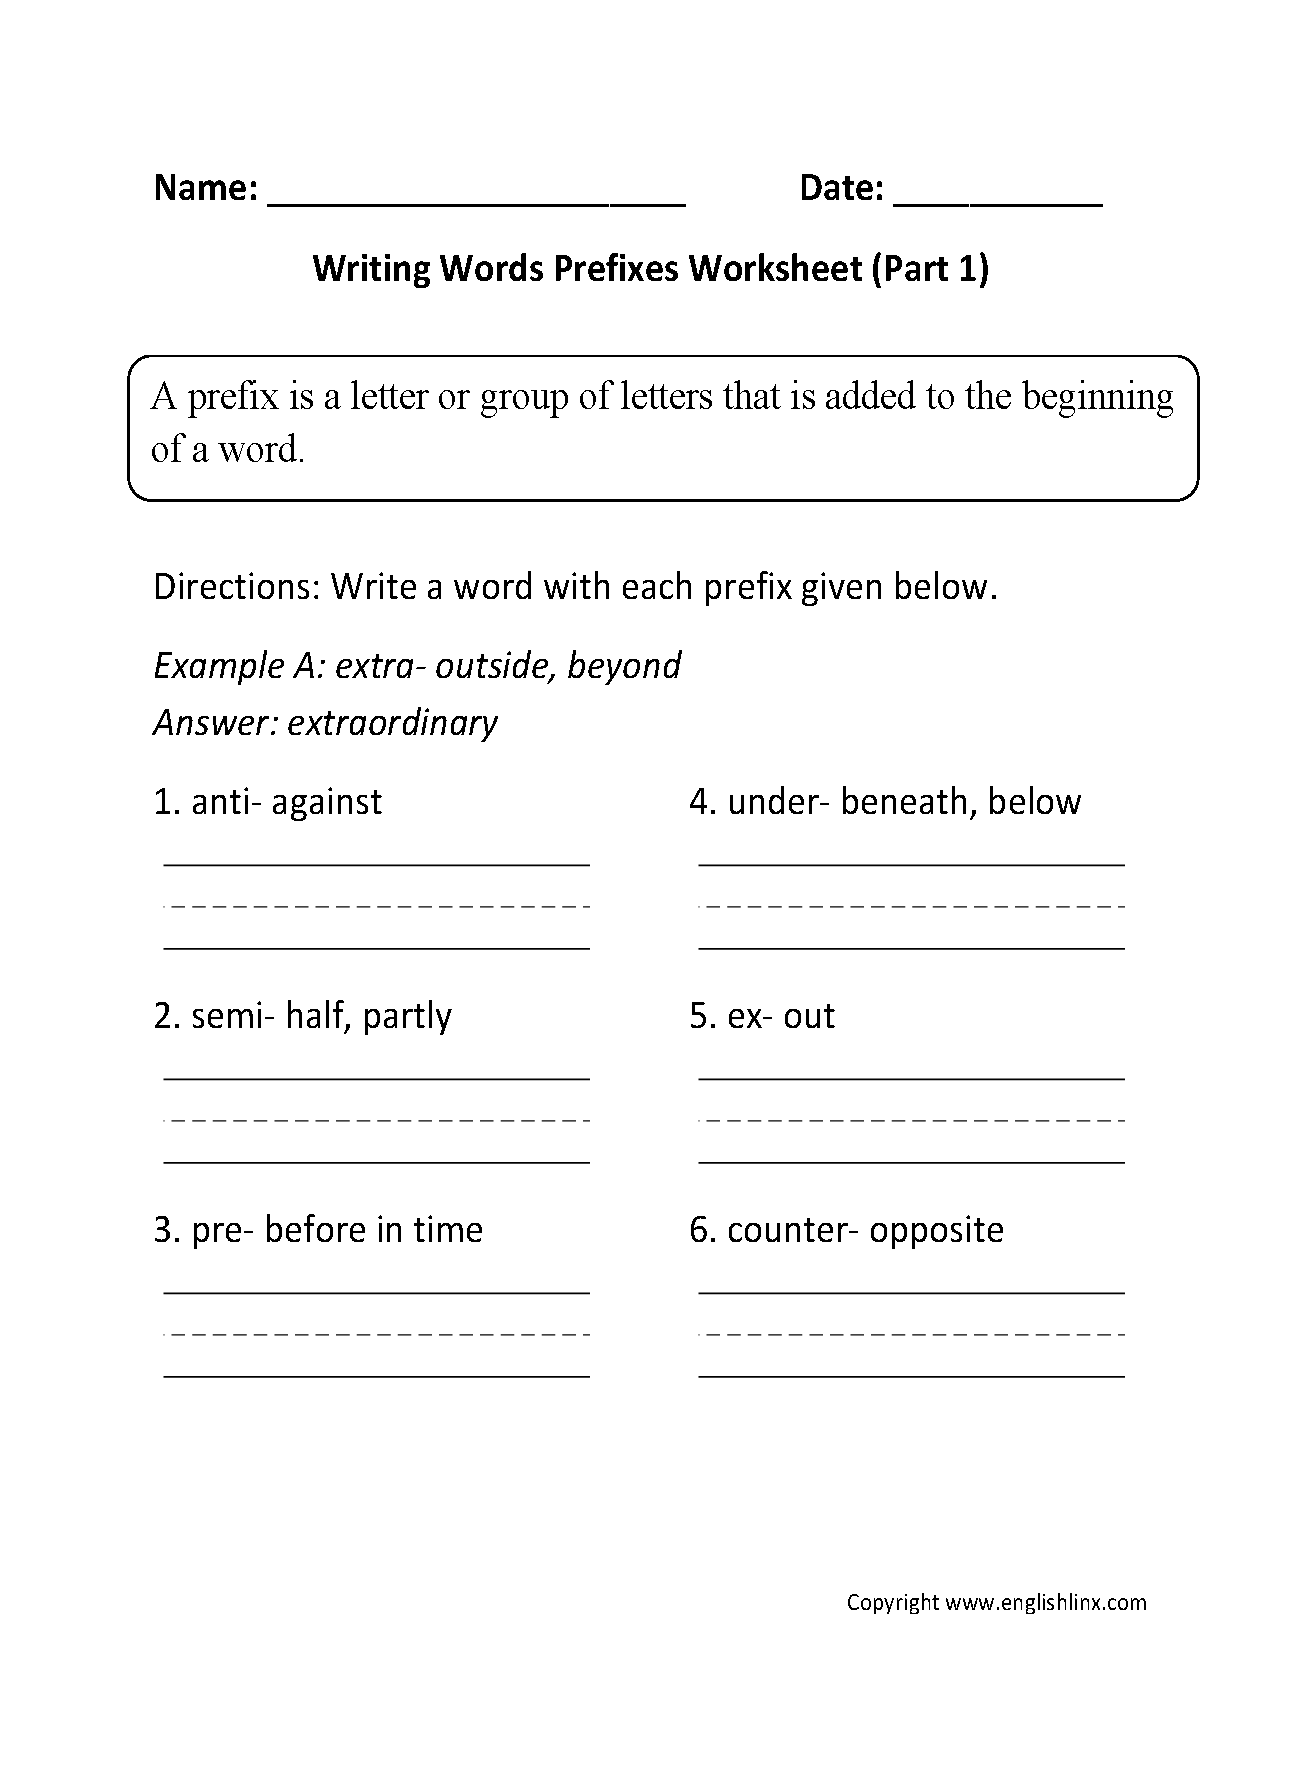 Writing Words Prefixes Worksheet Part 1